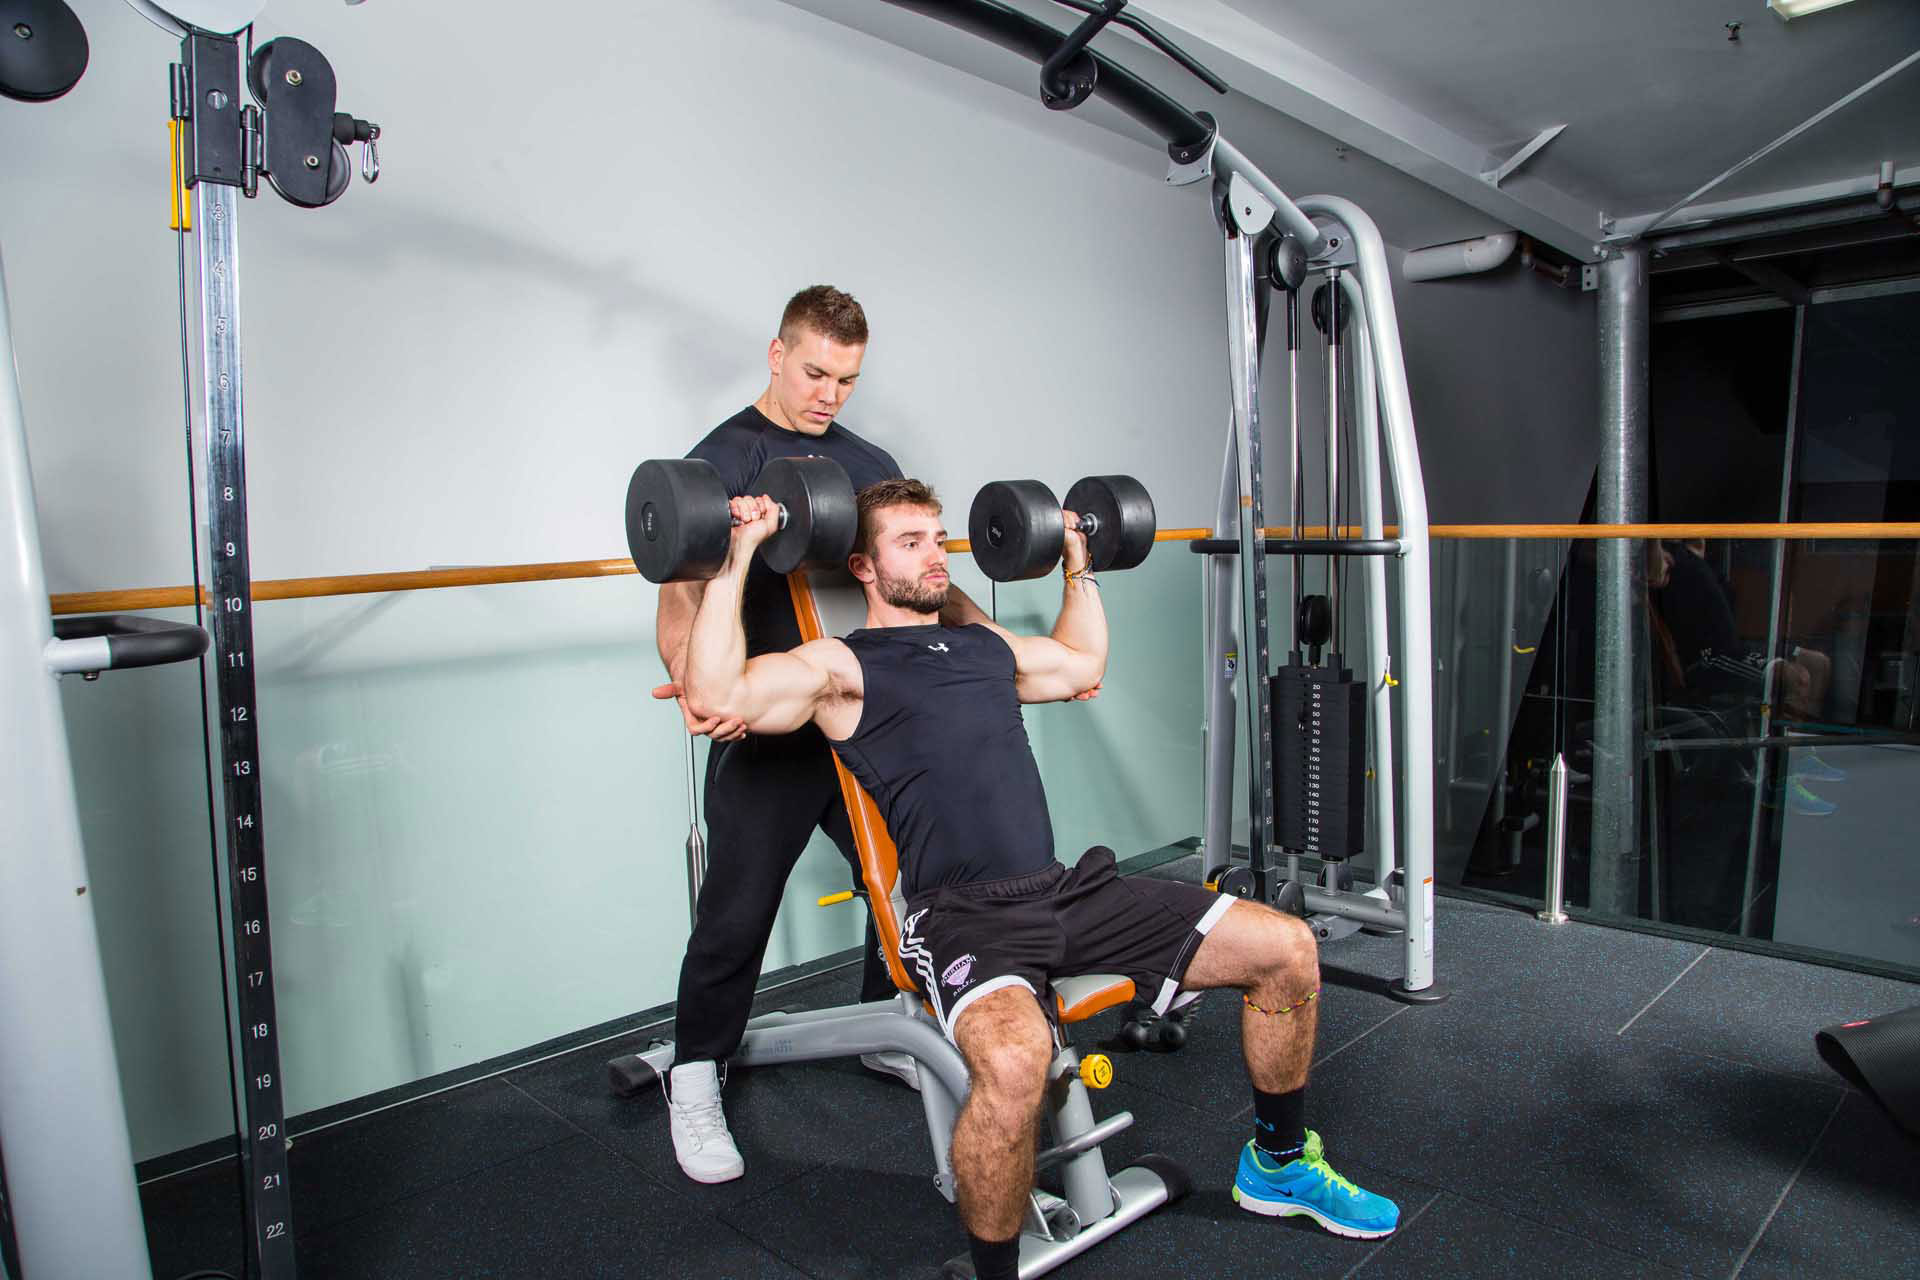 kaizen-fitness-weights-personal-trainer-hoggers